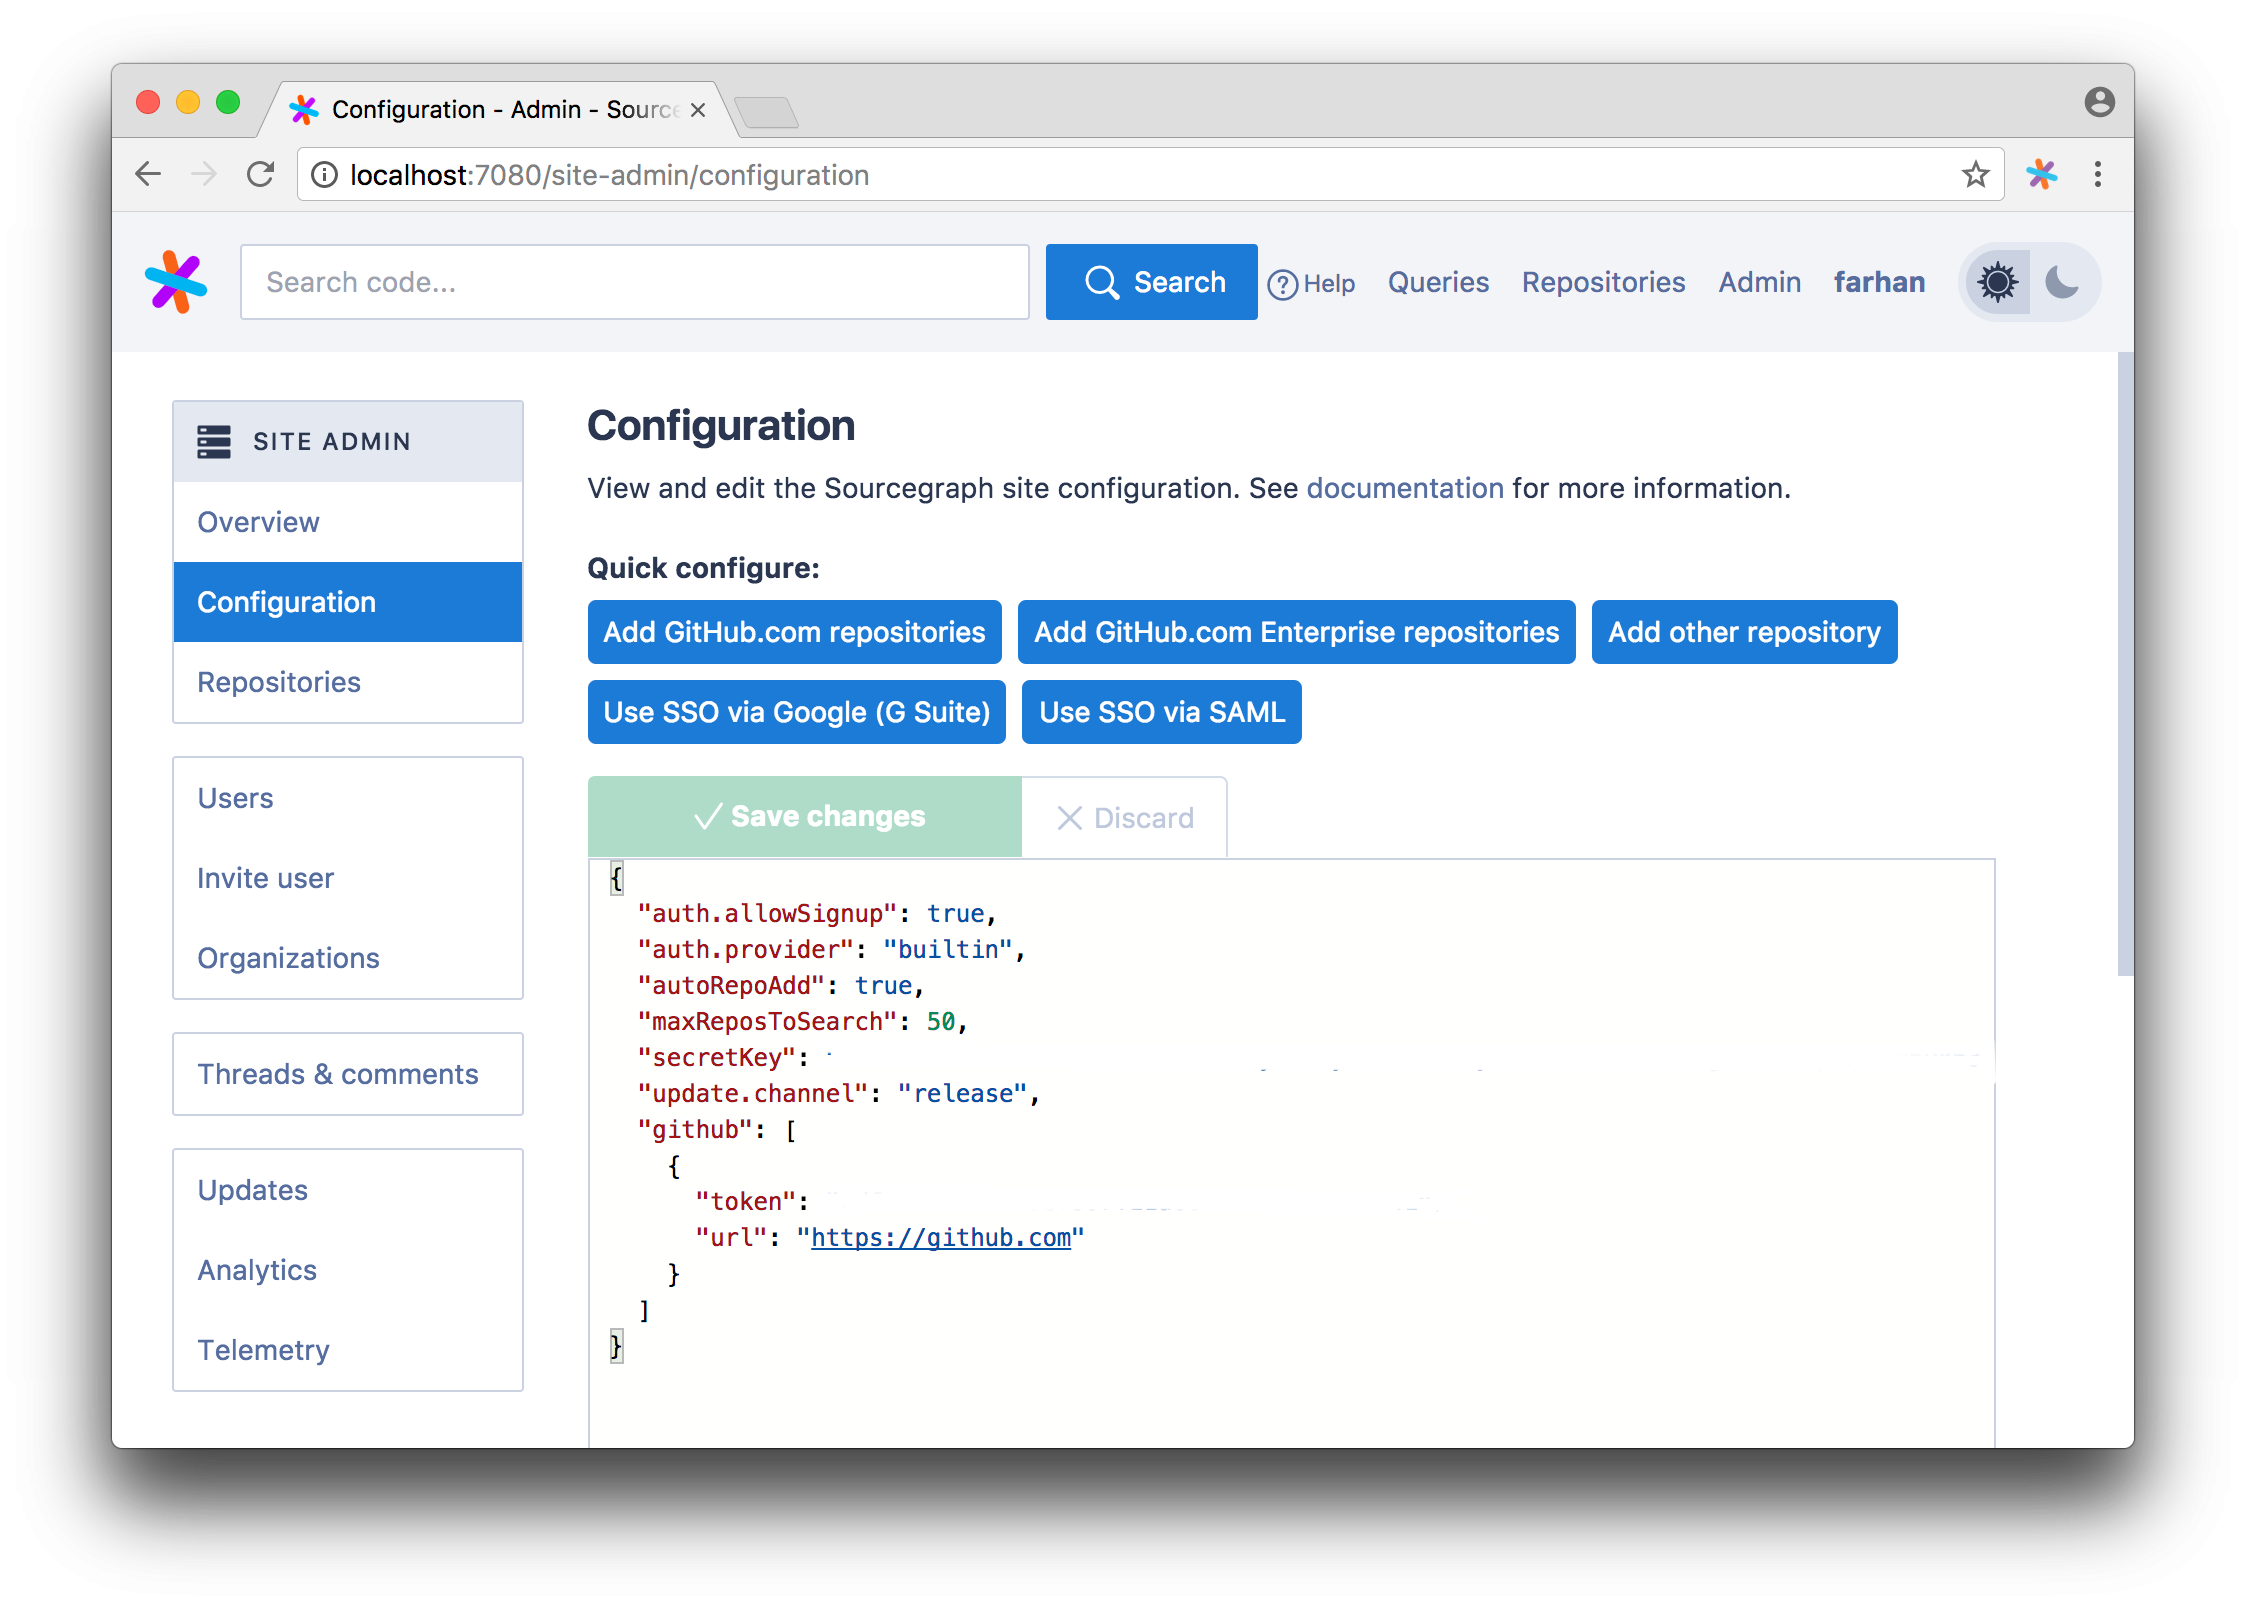 Announcing Sourcegraph 2.4: free, powerful search for your private code